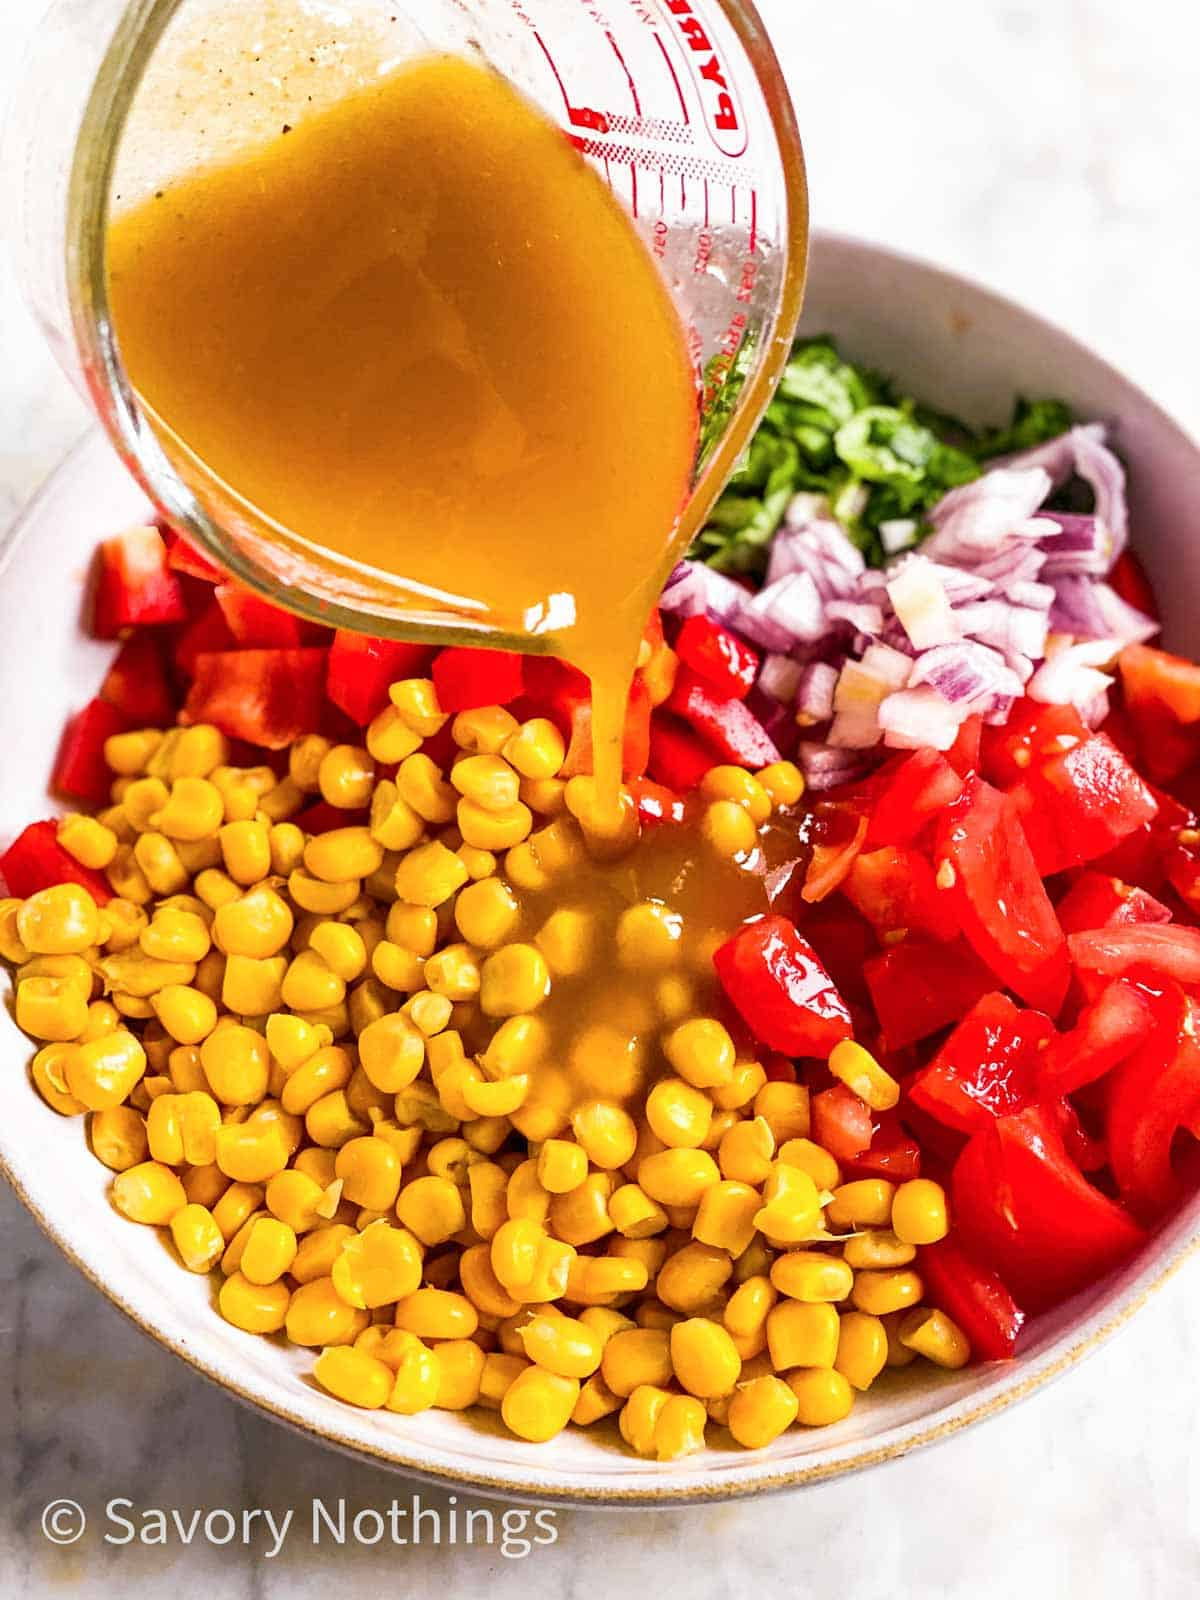 salad dressing pouring from glass measuring jug over corn salad ingredients in white bowl